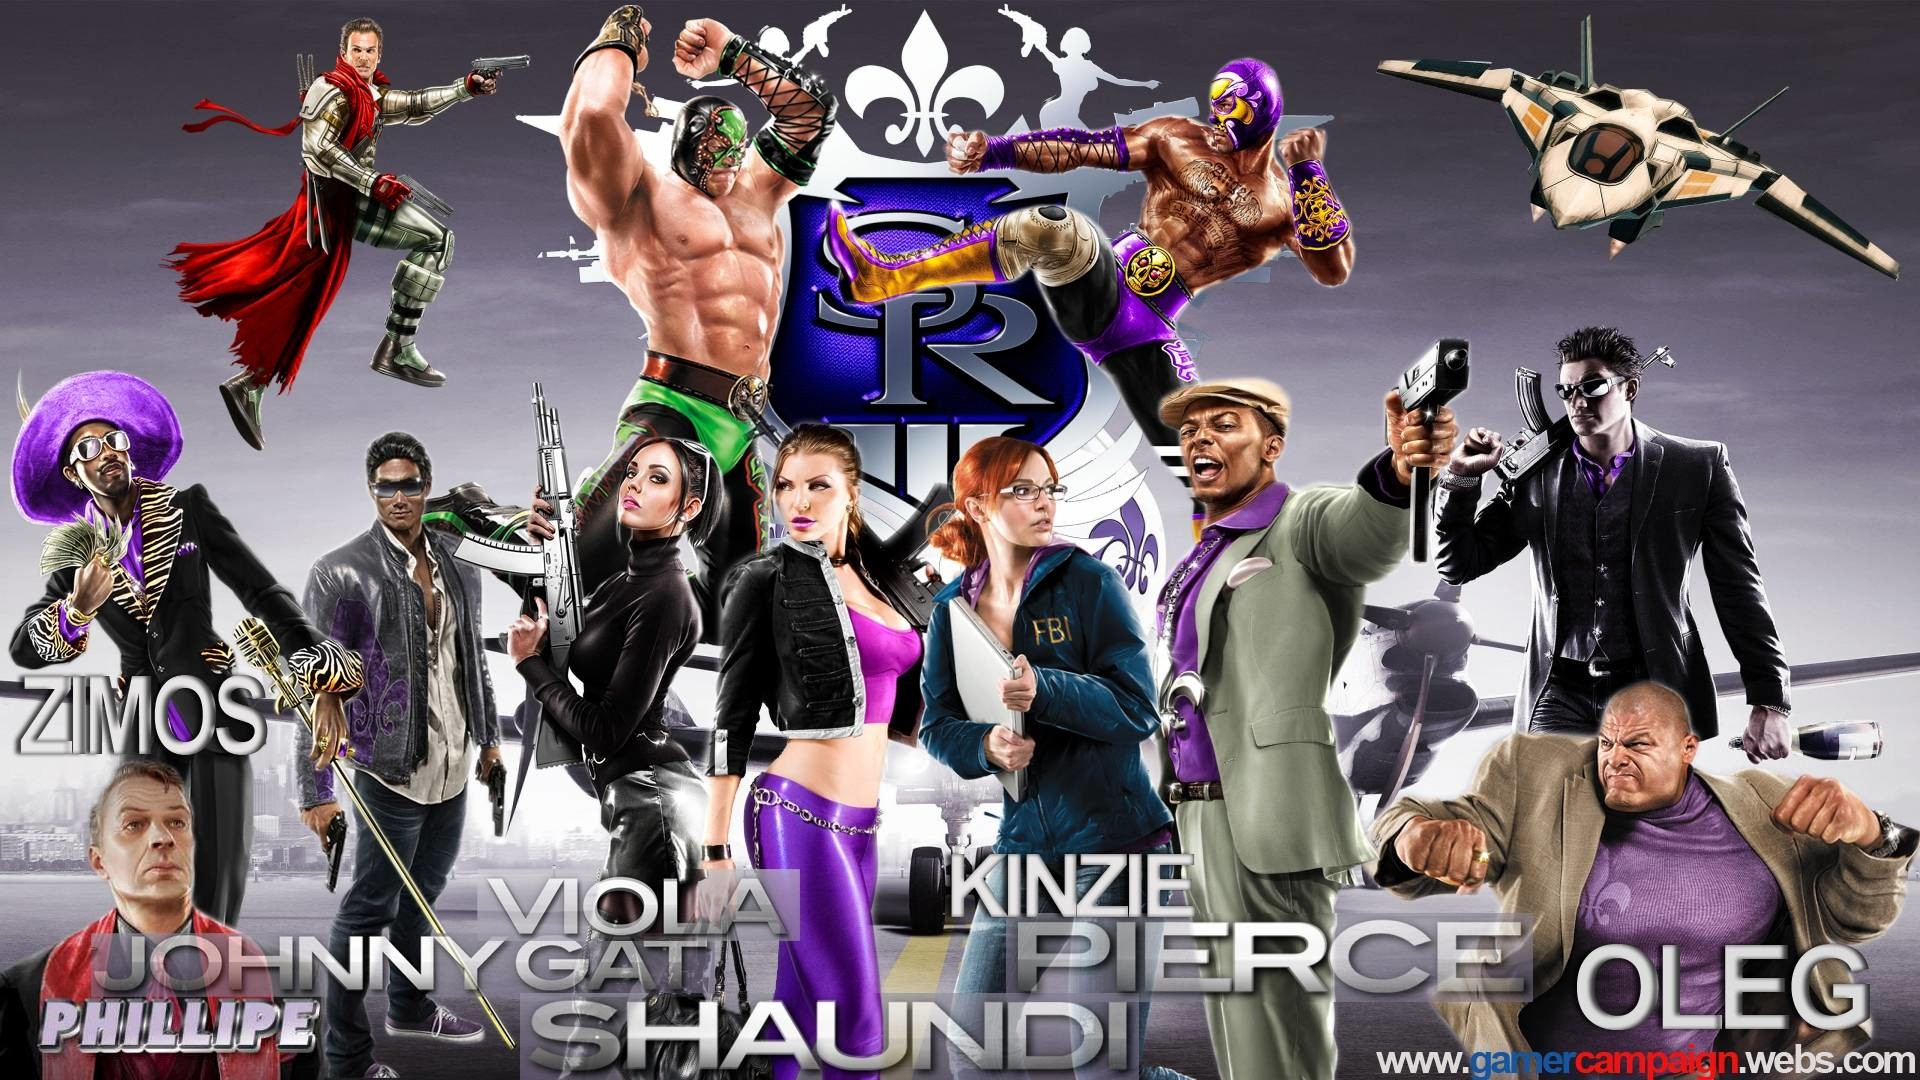 1920x1080 Saints Row IV Wallpaper #6996619